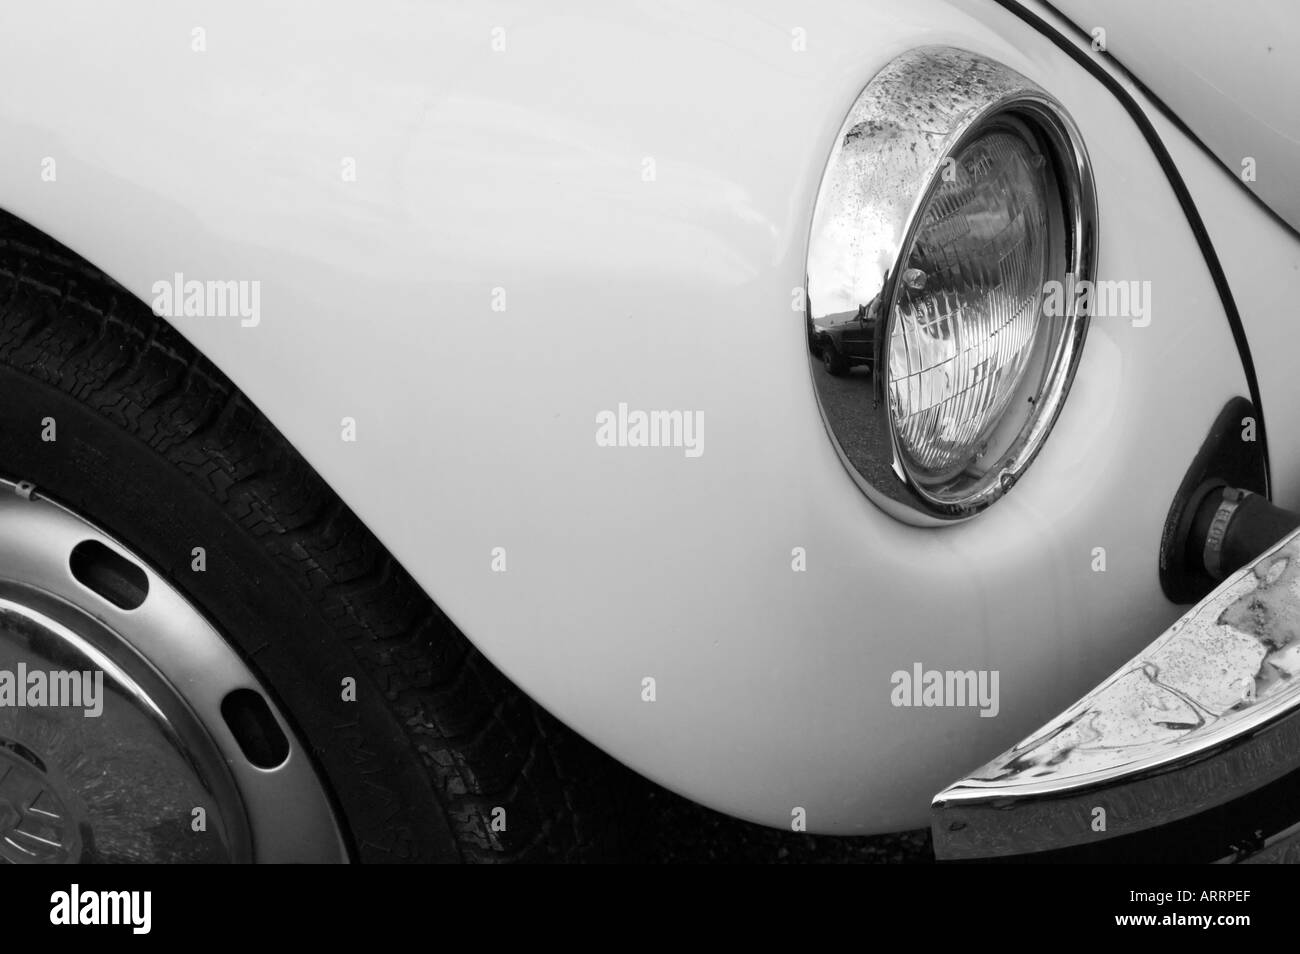 Detail of head light of volkswagen beetle in black and white - Stock Image